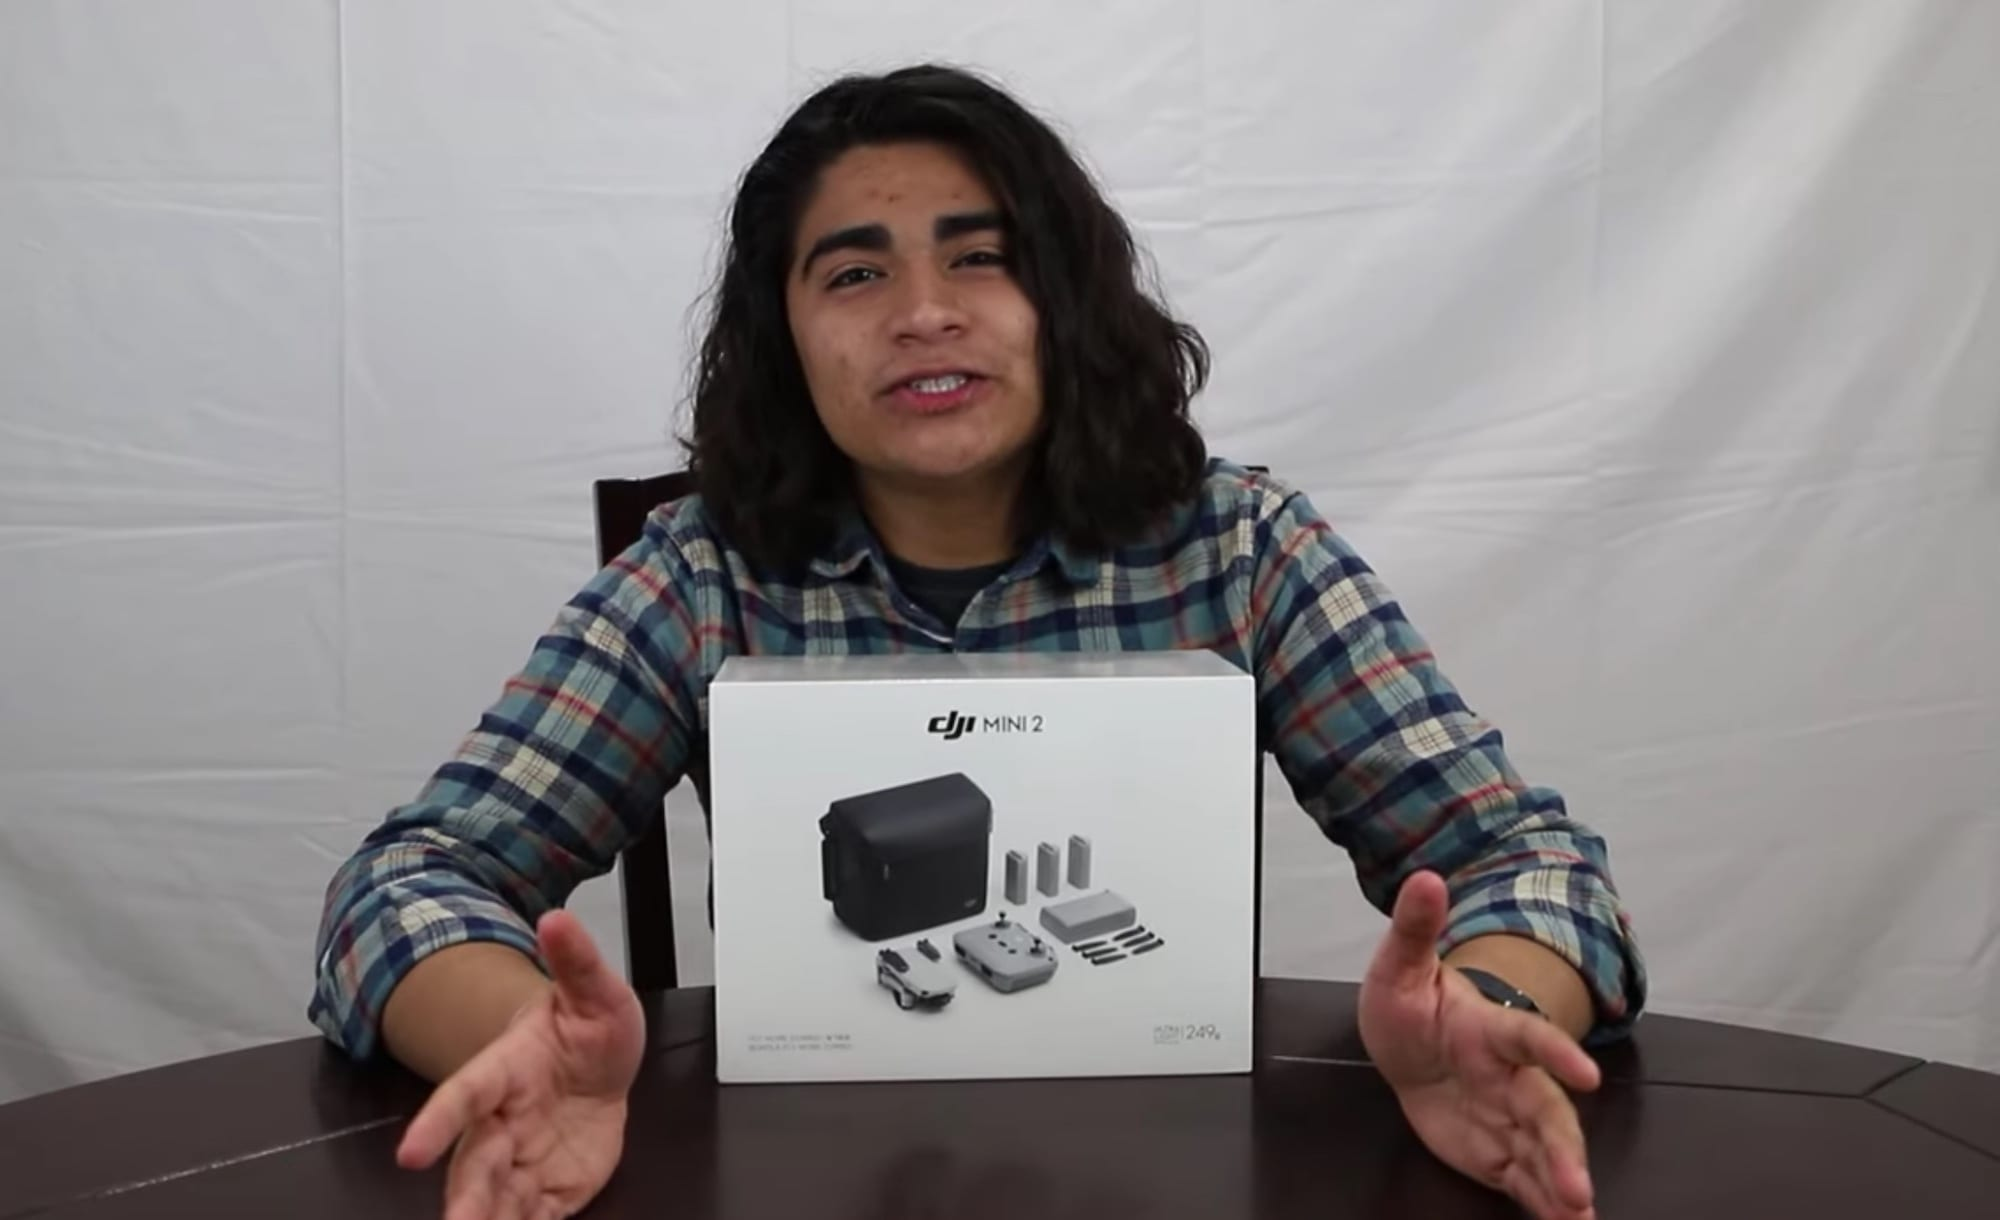 DJI Mini 2 Fly More Combo unboxing video hits YouTube. Yes, another one...